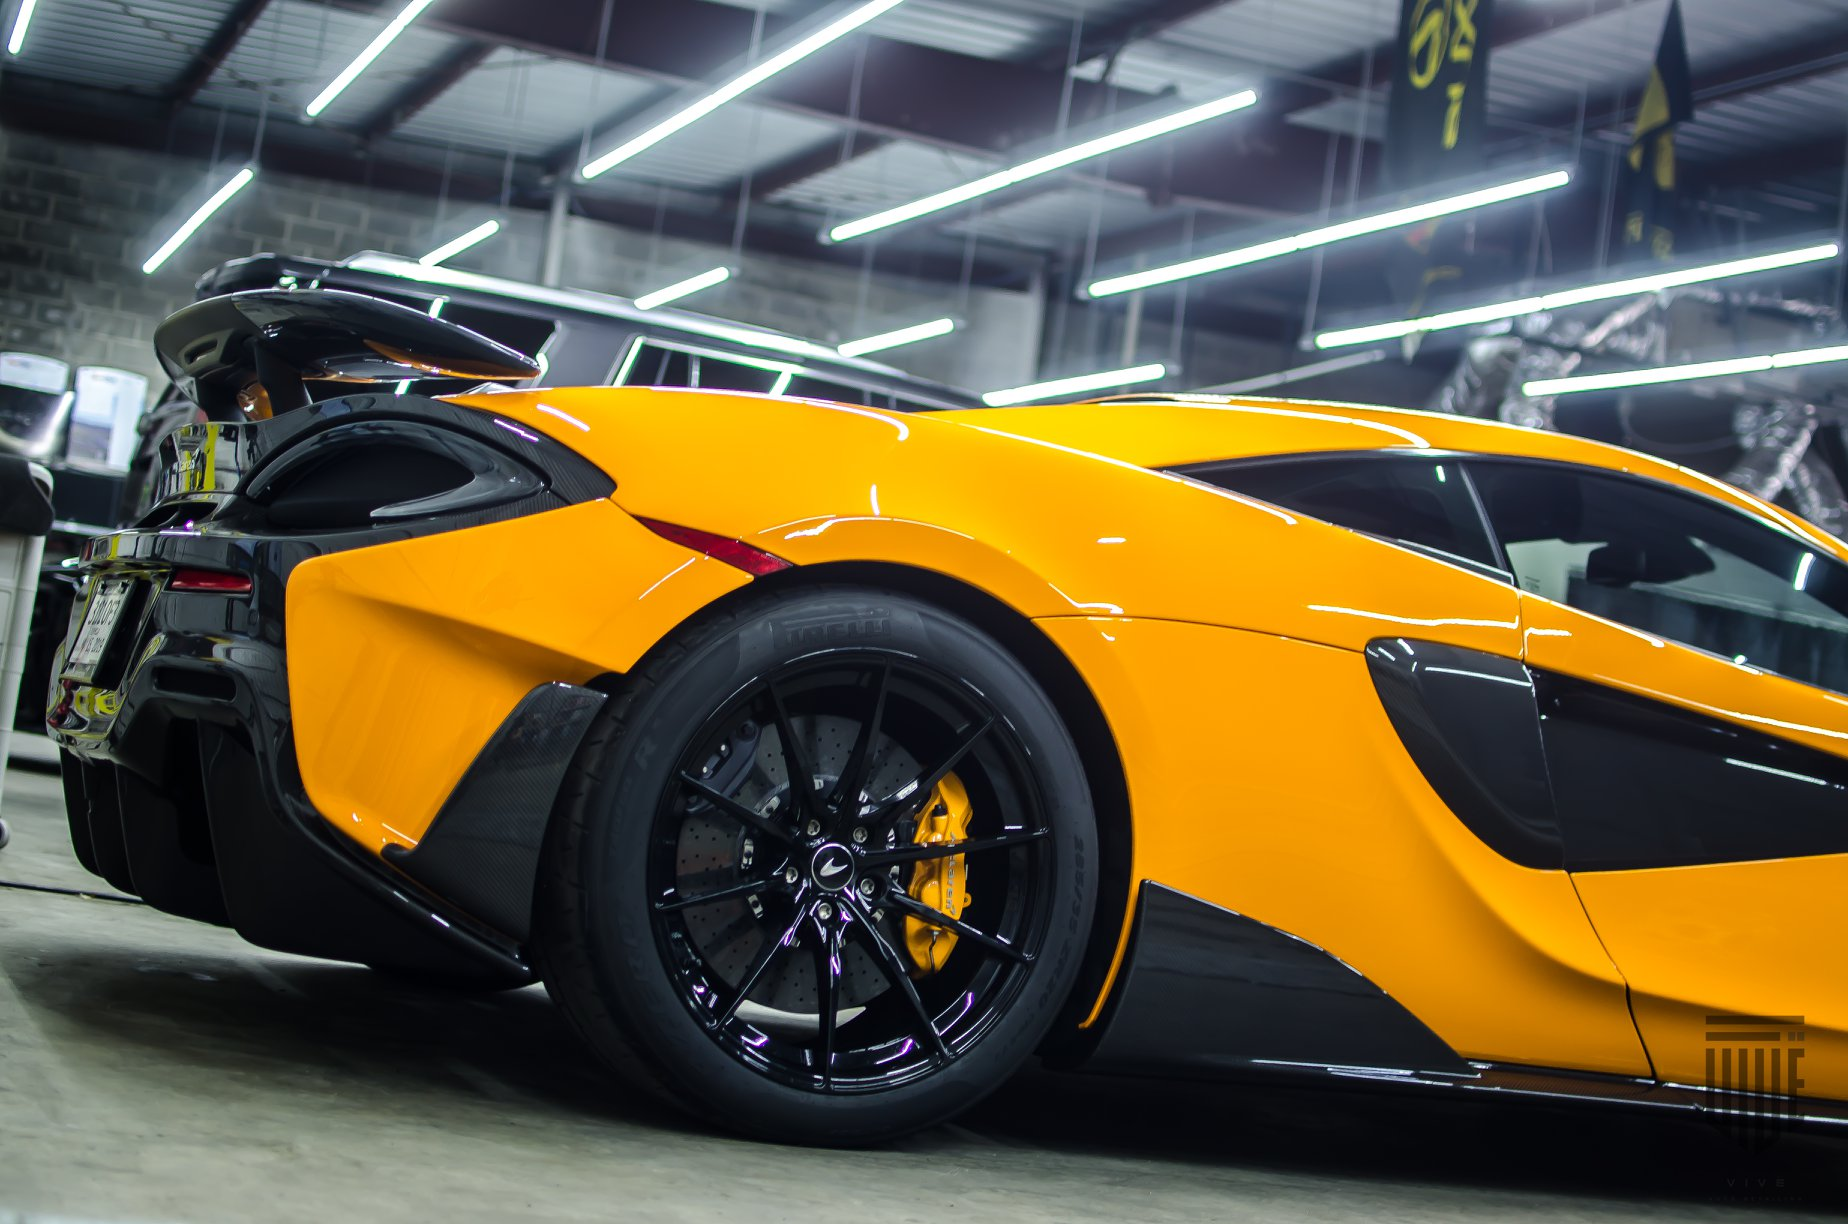 Ceramic Coating: What is it? Benefits? Disadvantages?